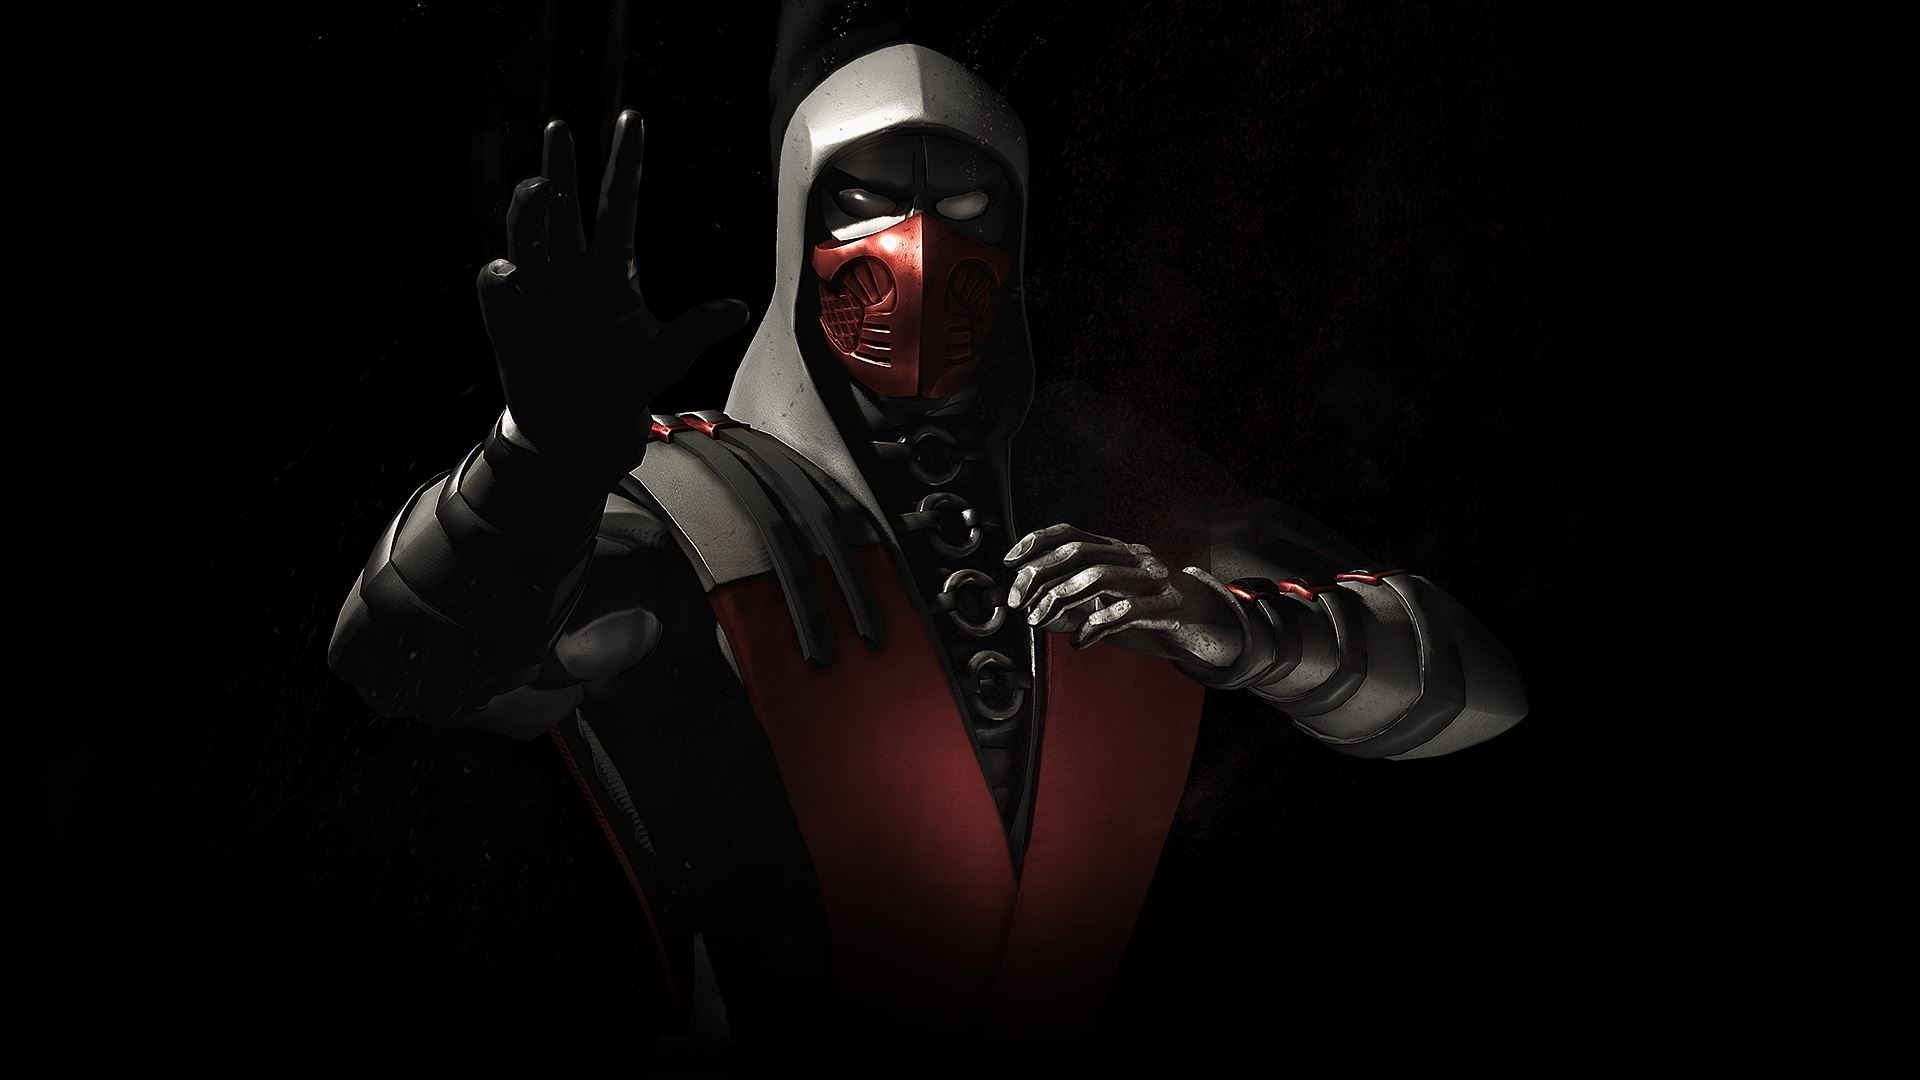 Ermac Mortal Kombat X Wallpapers In Jpg Format For Free Download